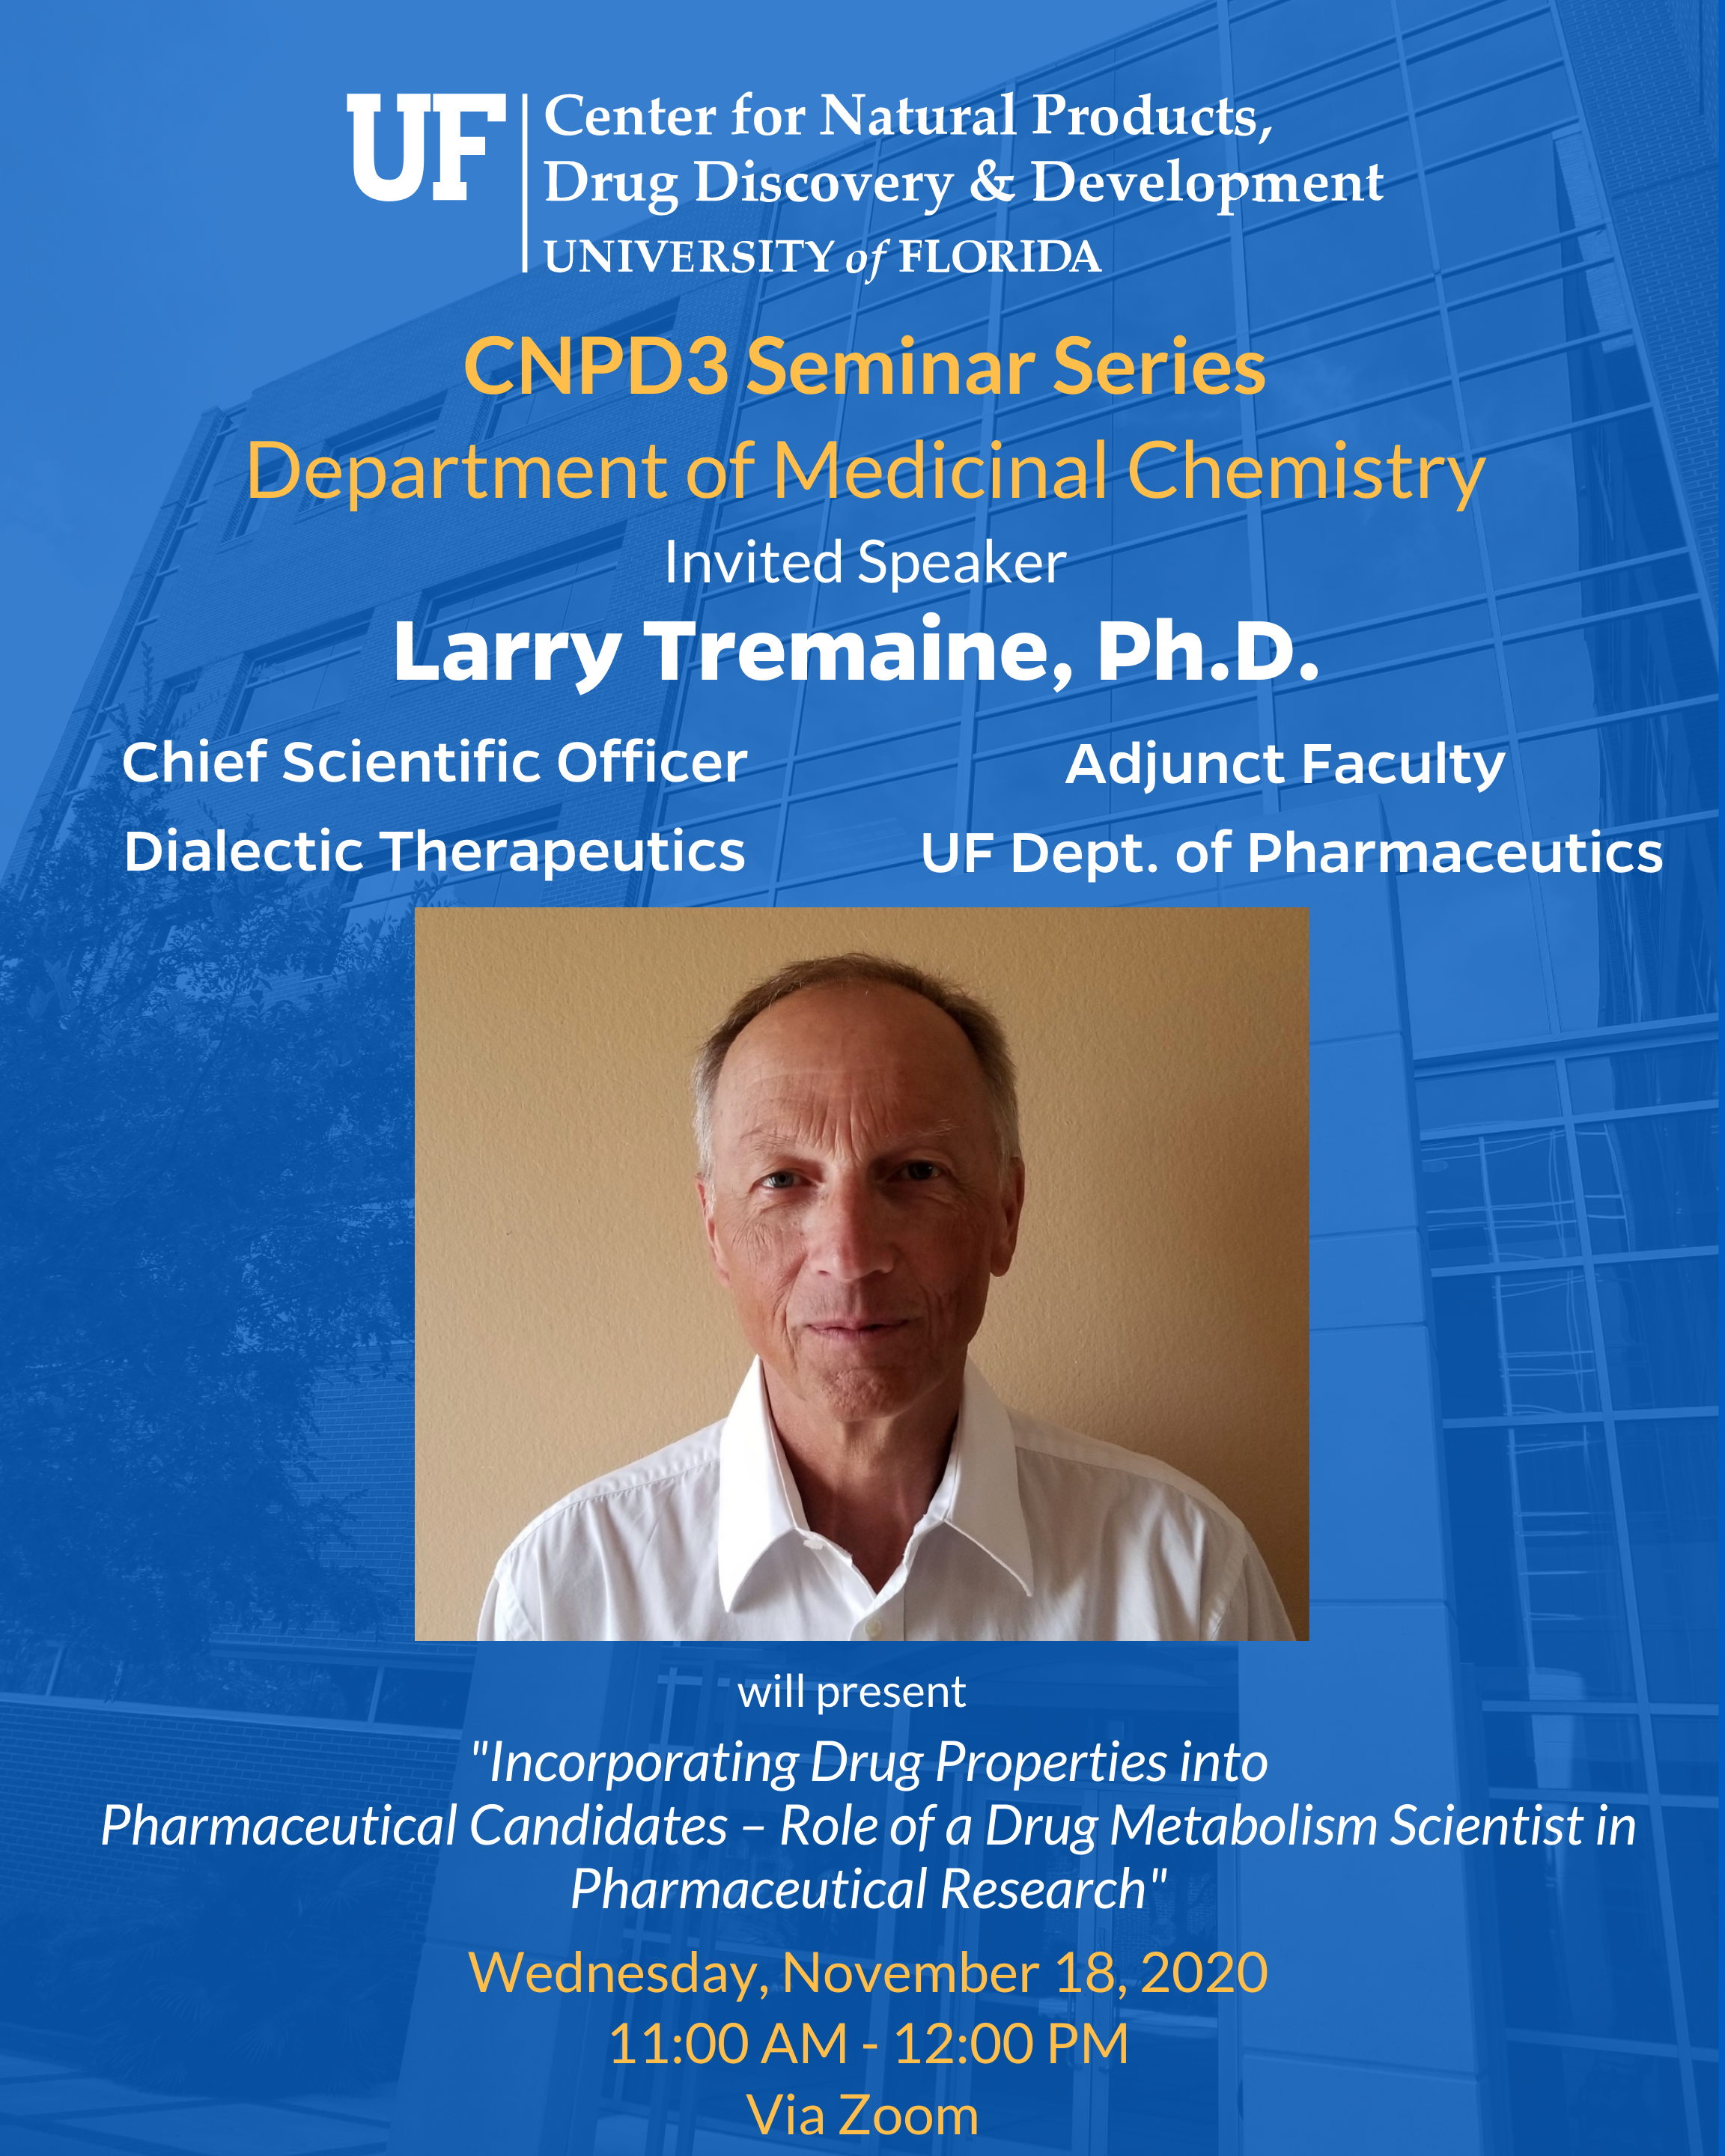 CNPD3 Seminar Series Fall 2020 Lecturer Larry Tremaine